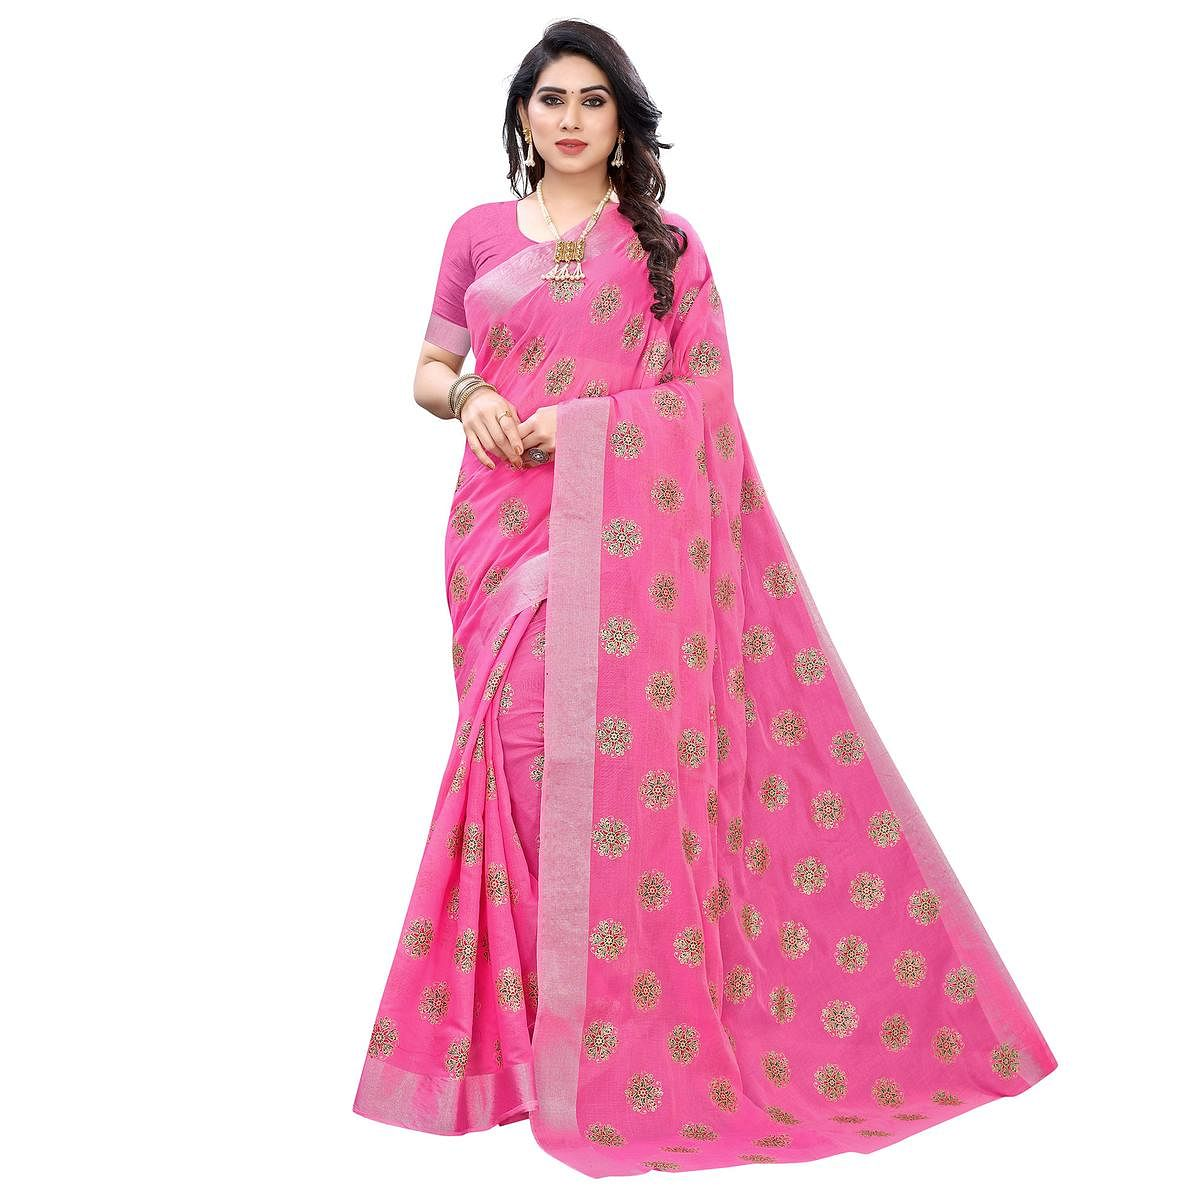 Capricious Pink Colored Casual Wear Printed Chanderi Cotton Saree